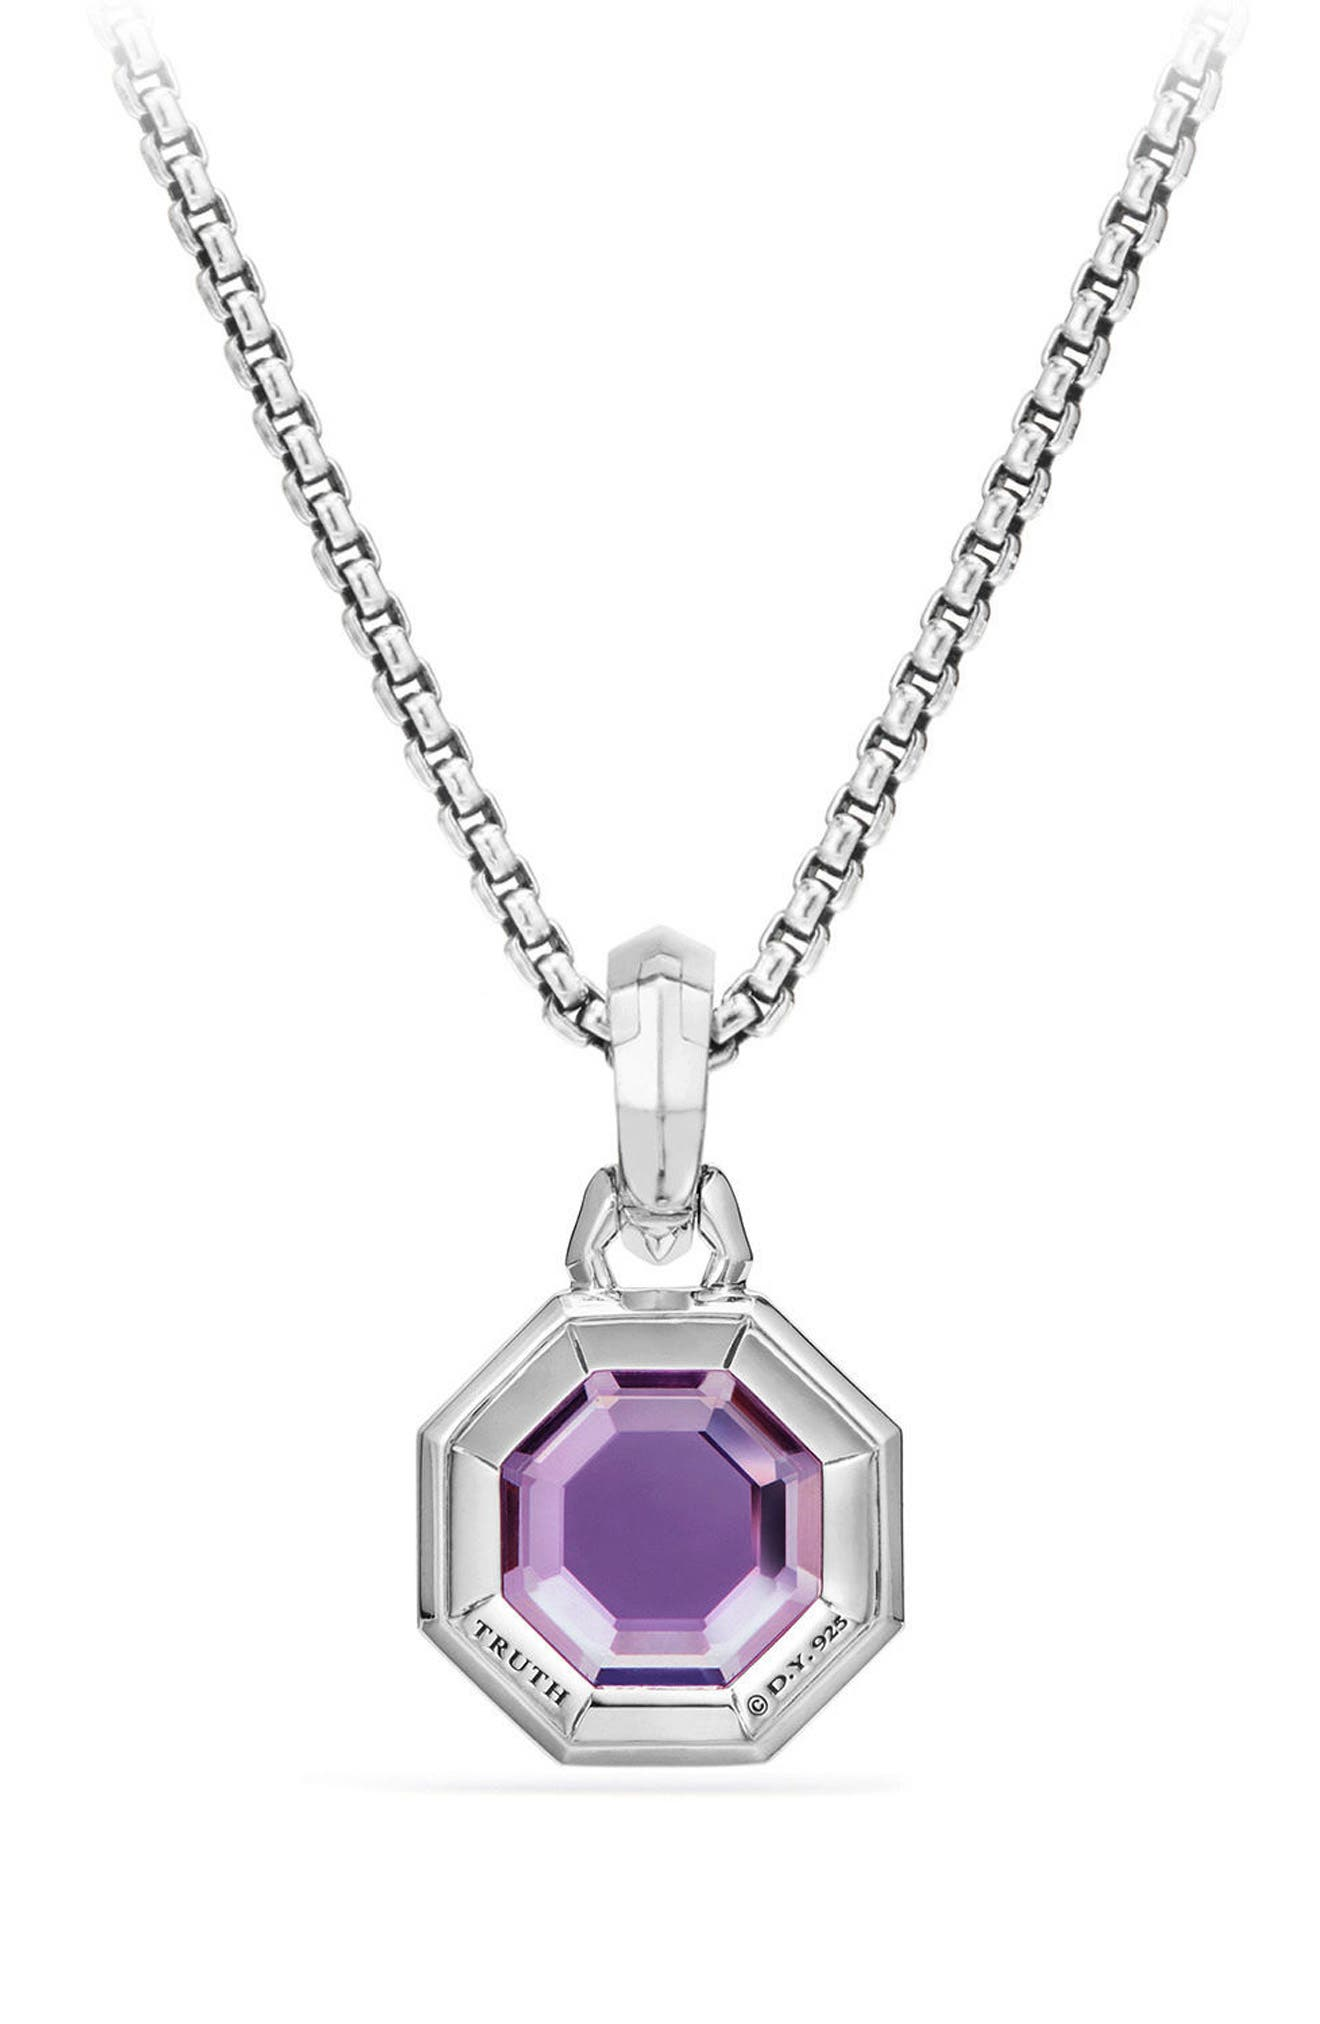 Cable Collectibles Octagon Cut Semiprecious Stone Amulet,                             Alternate thumbnail 2, color,                             AMETHYST